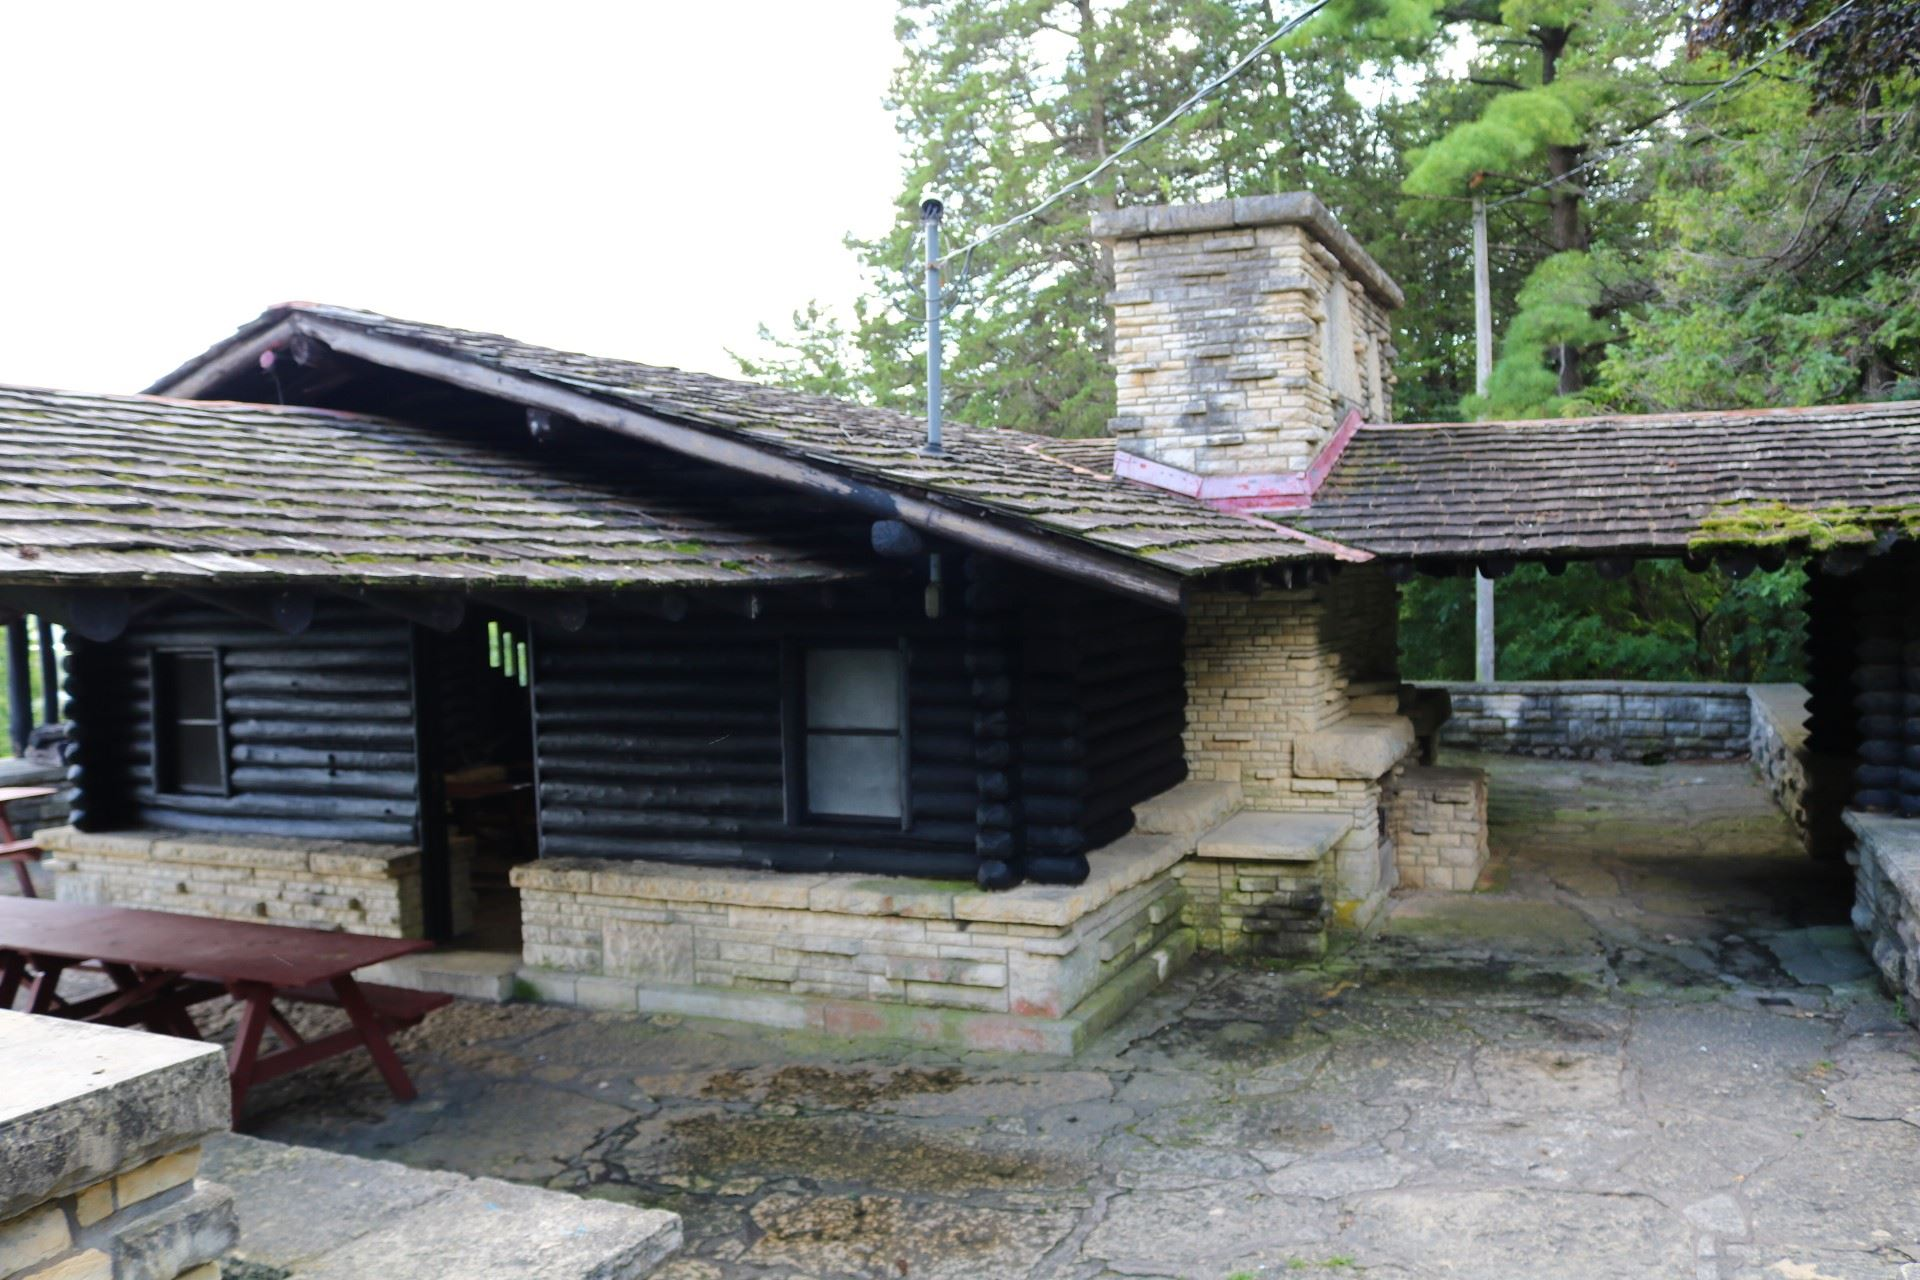 Log Cabin Pavilion seating: 110 people; price: $115.00. Large stone stairs down a hill, 20 amp elect